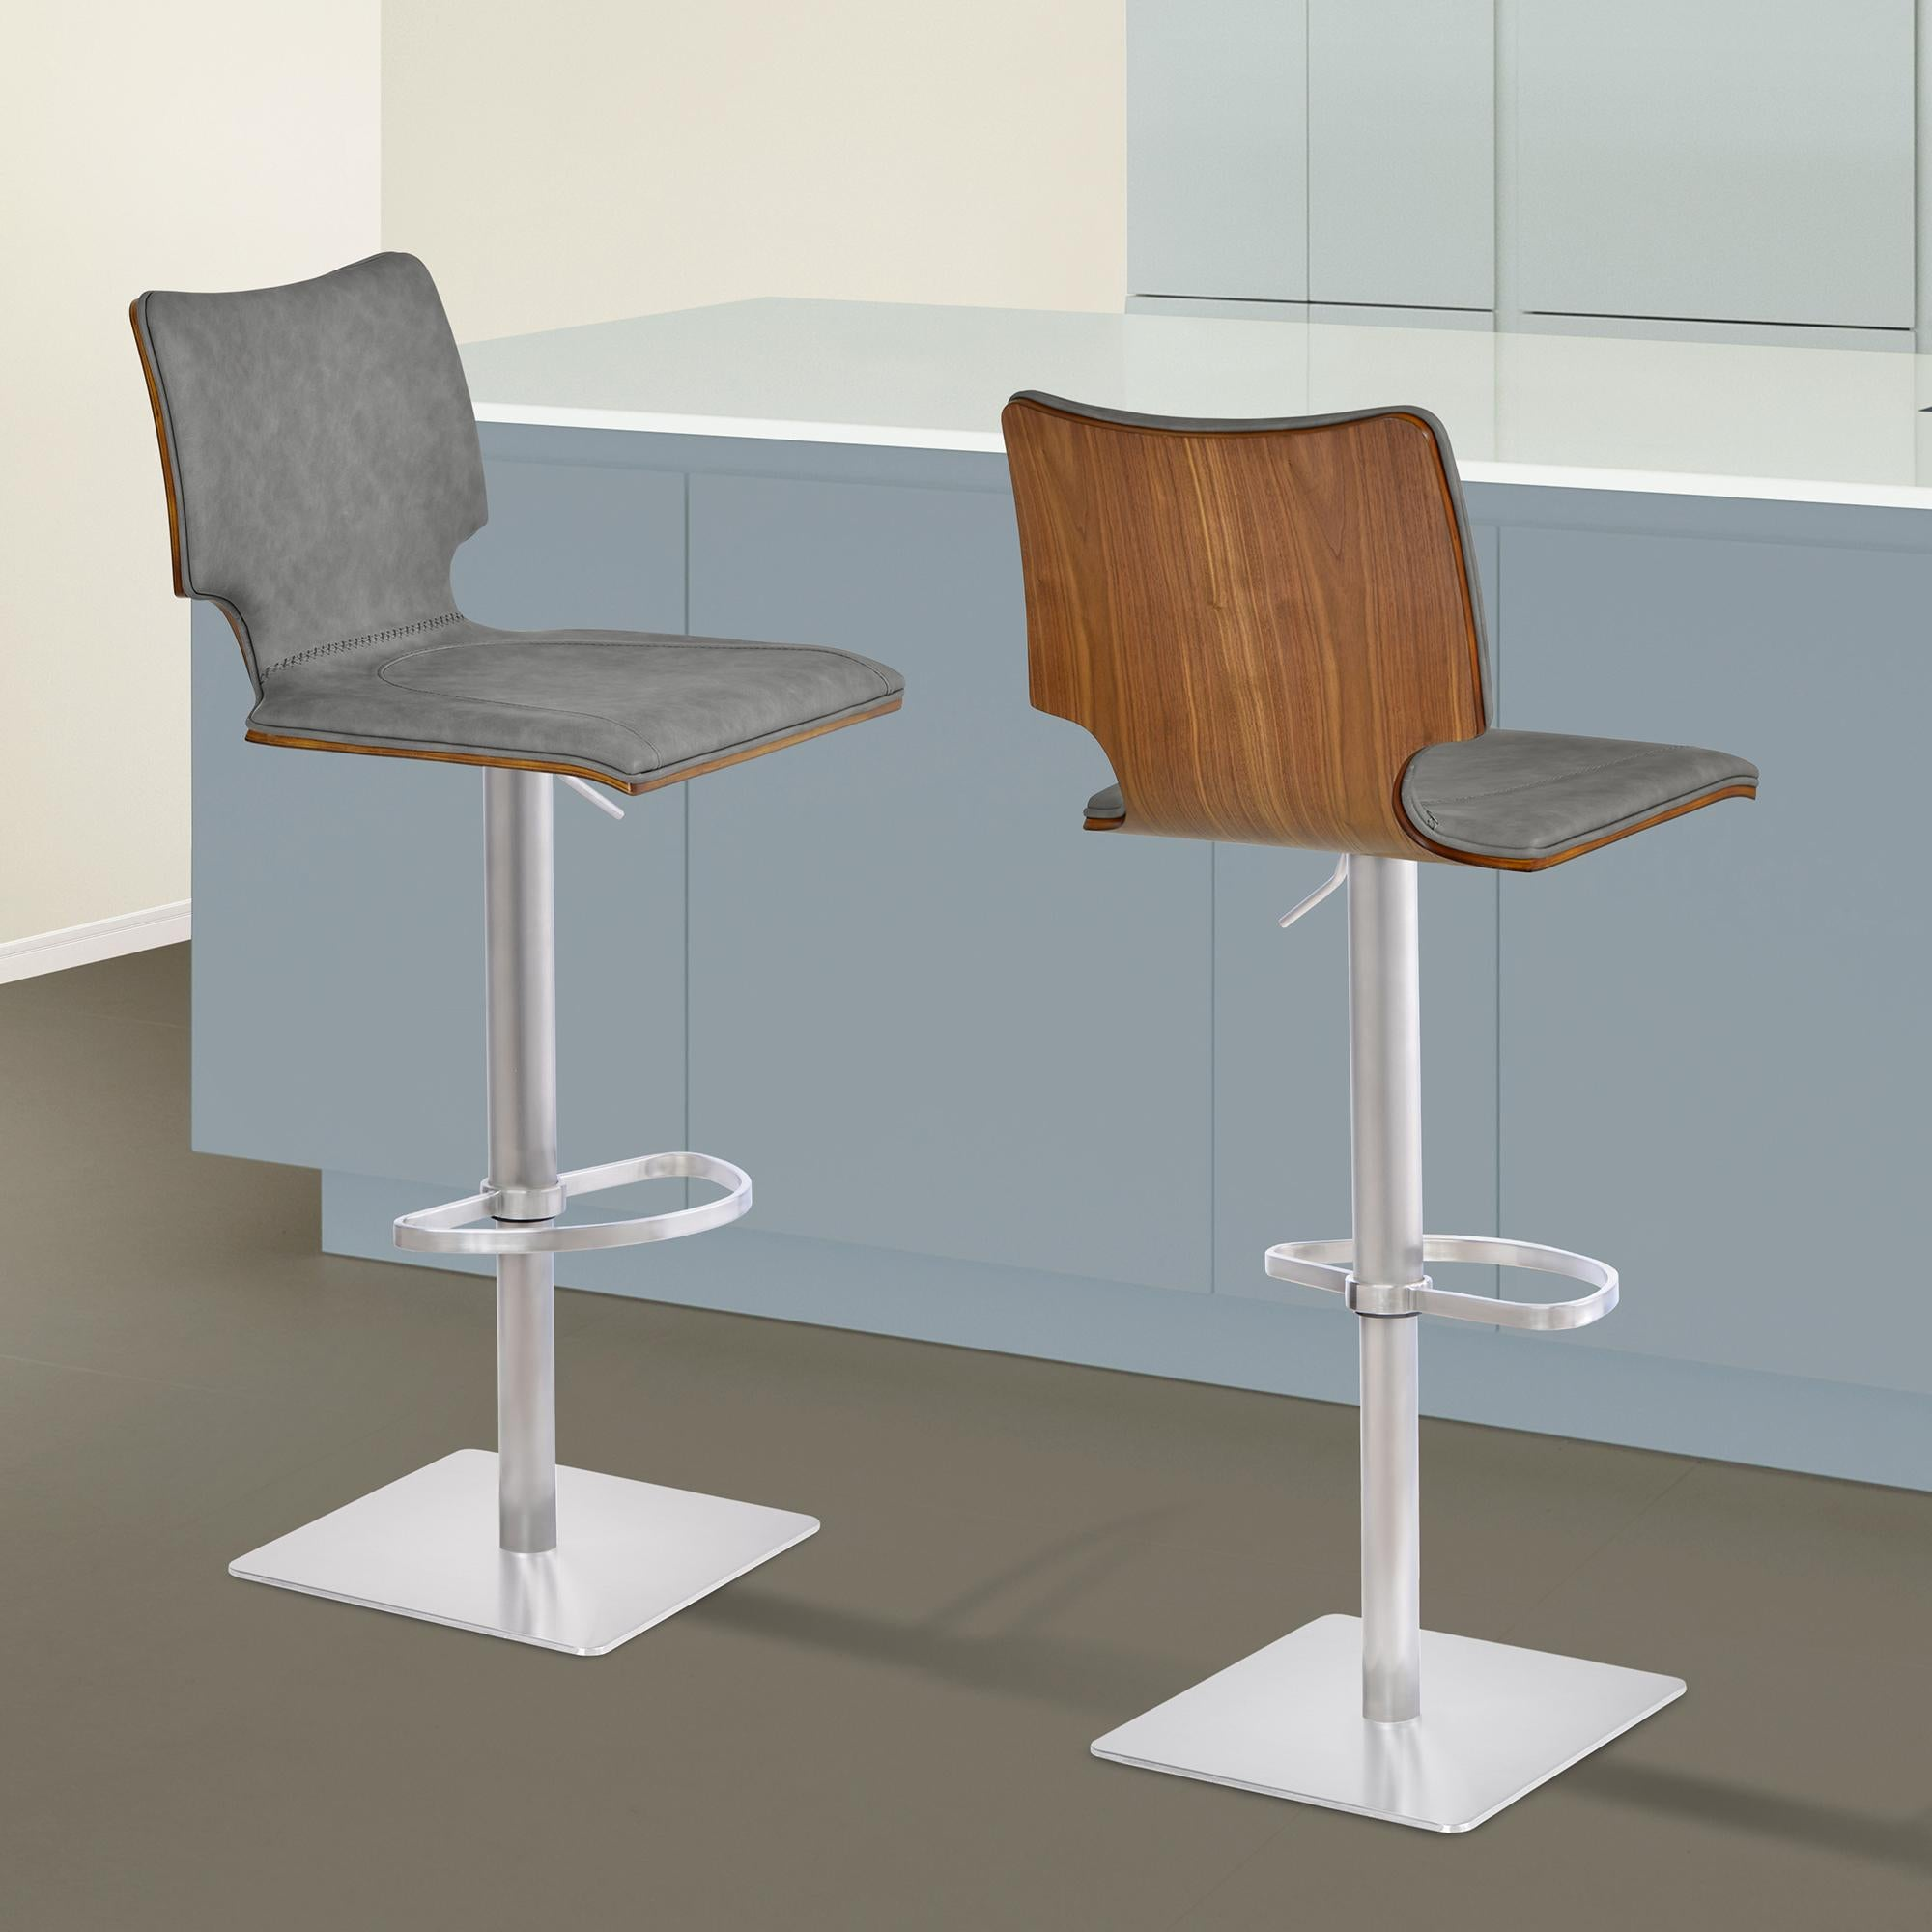 Armen Living Sydney Adjustable Barstool in Brushed Stainless Steel with Vintage Grey Faux Leather and Walnut Wood Back